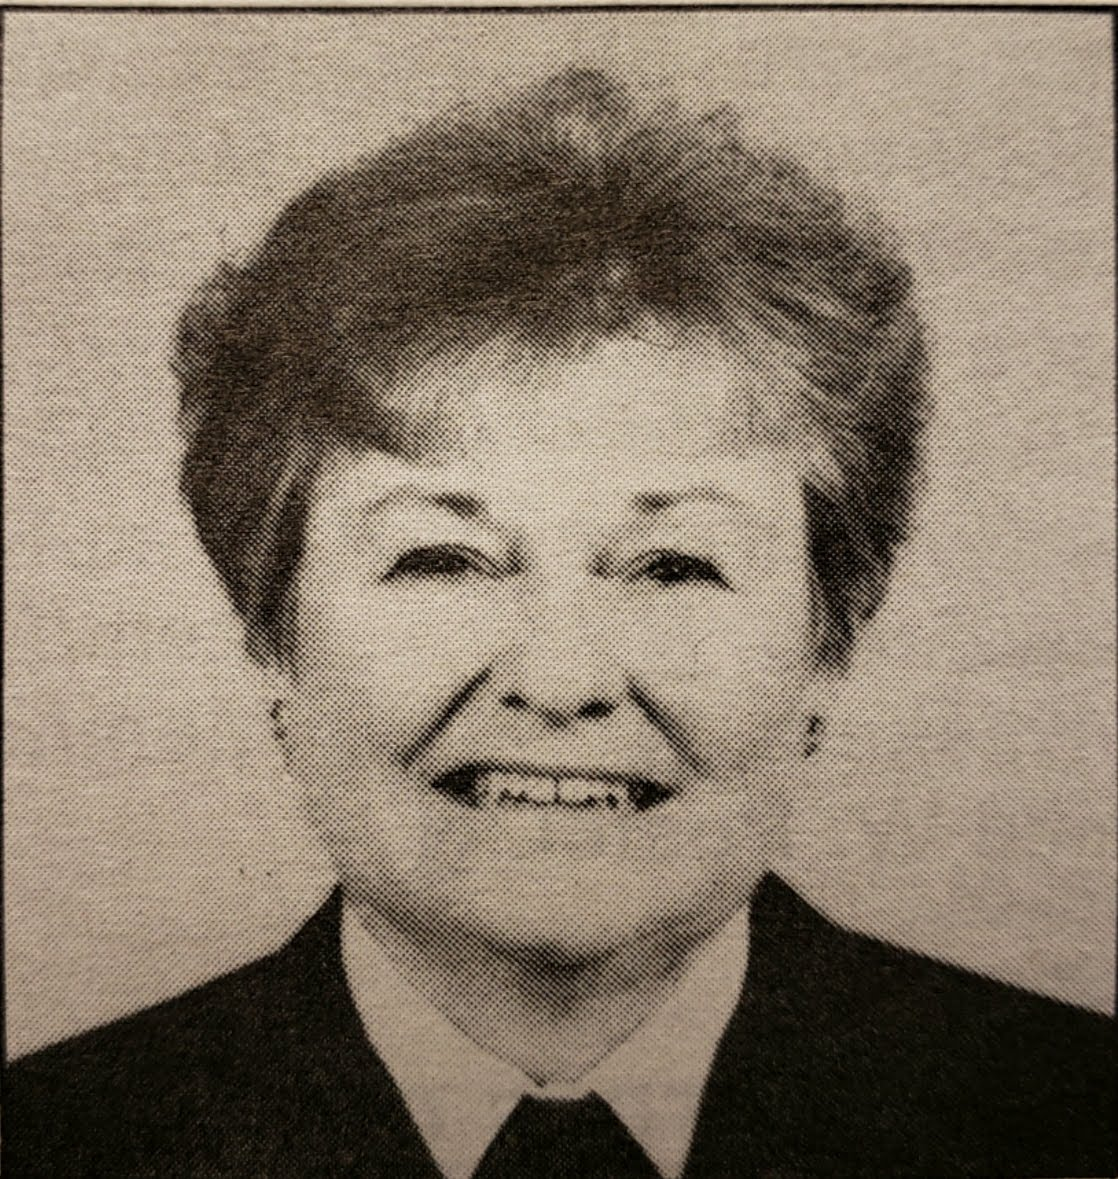 Barbara Hesketh